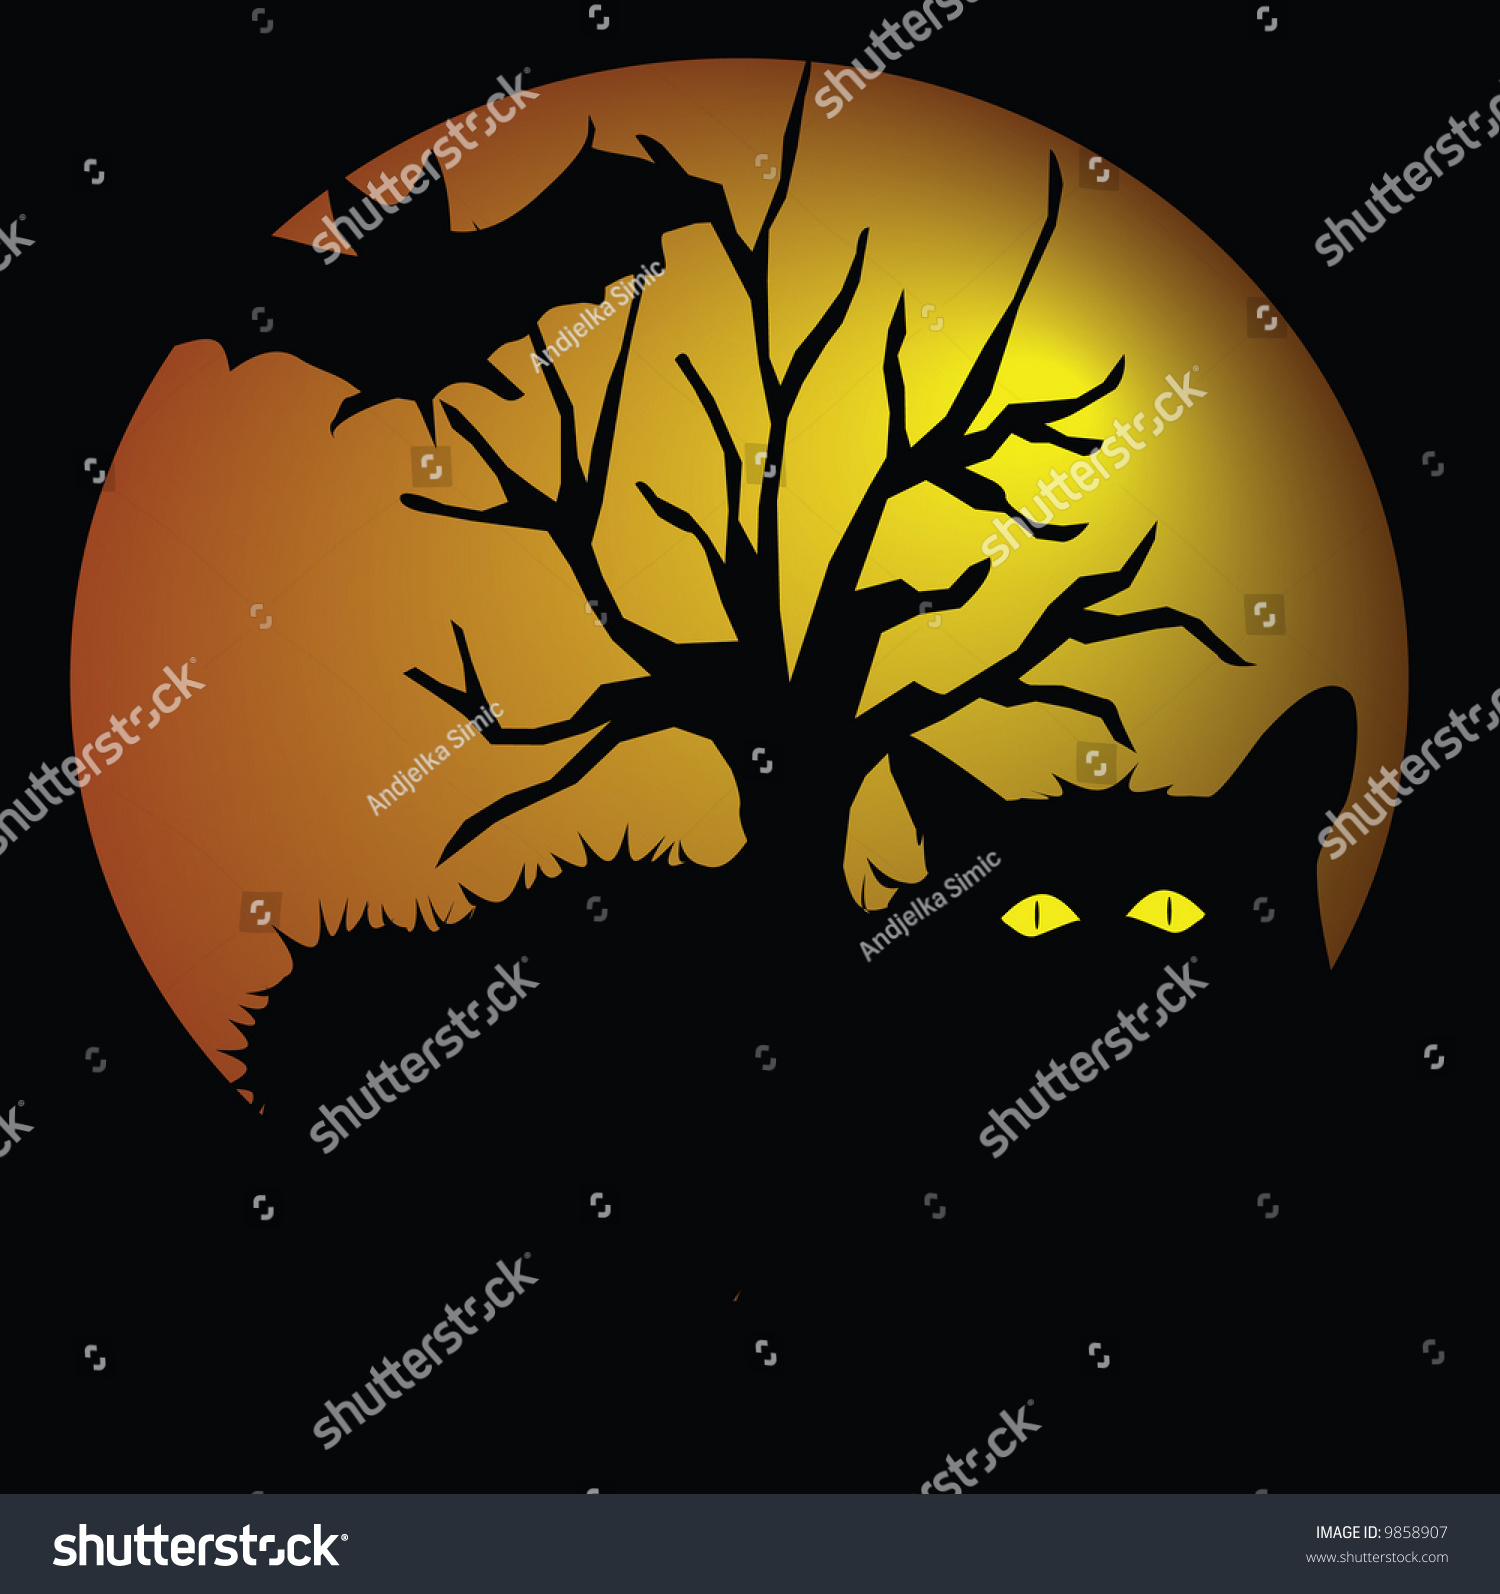 hallowing with black cat, bat and tree illustration